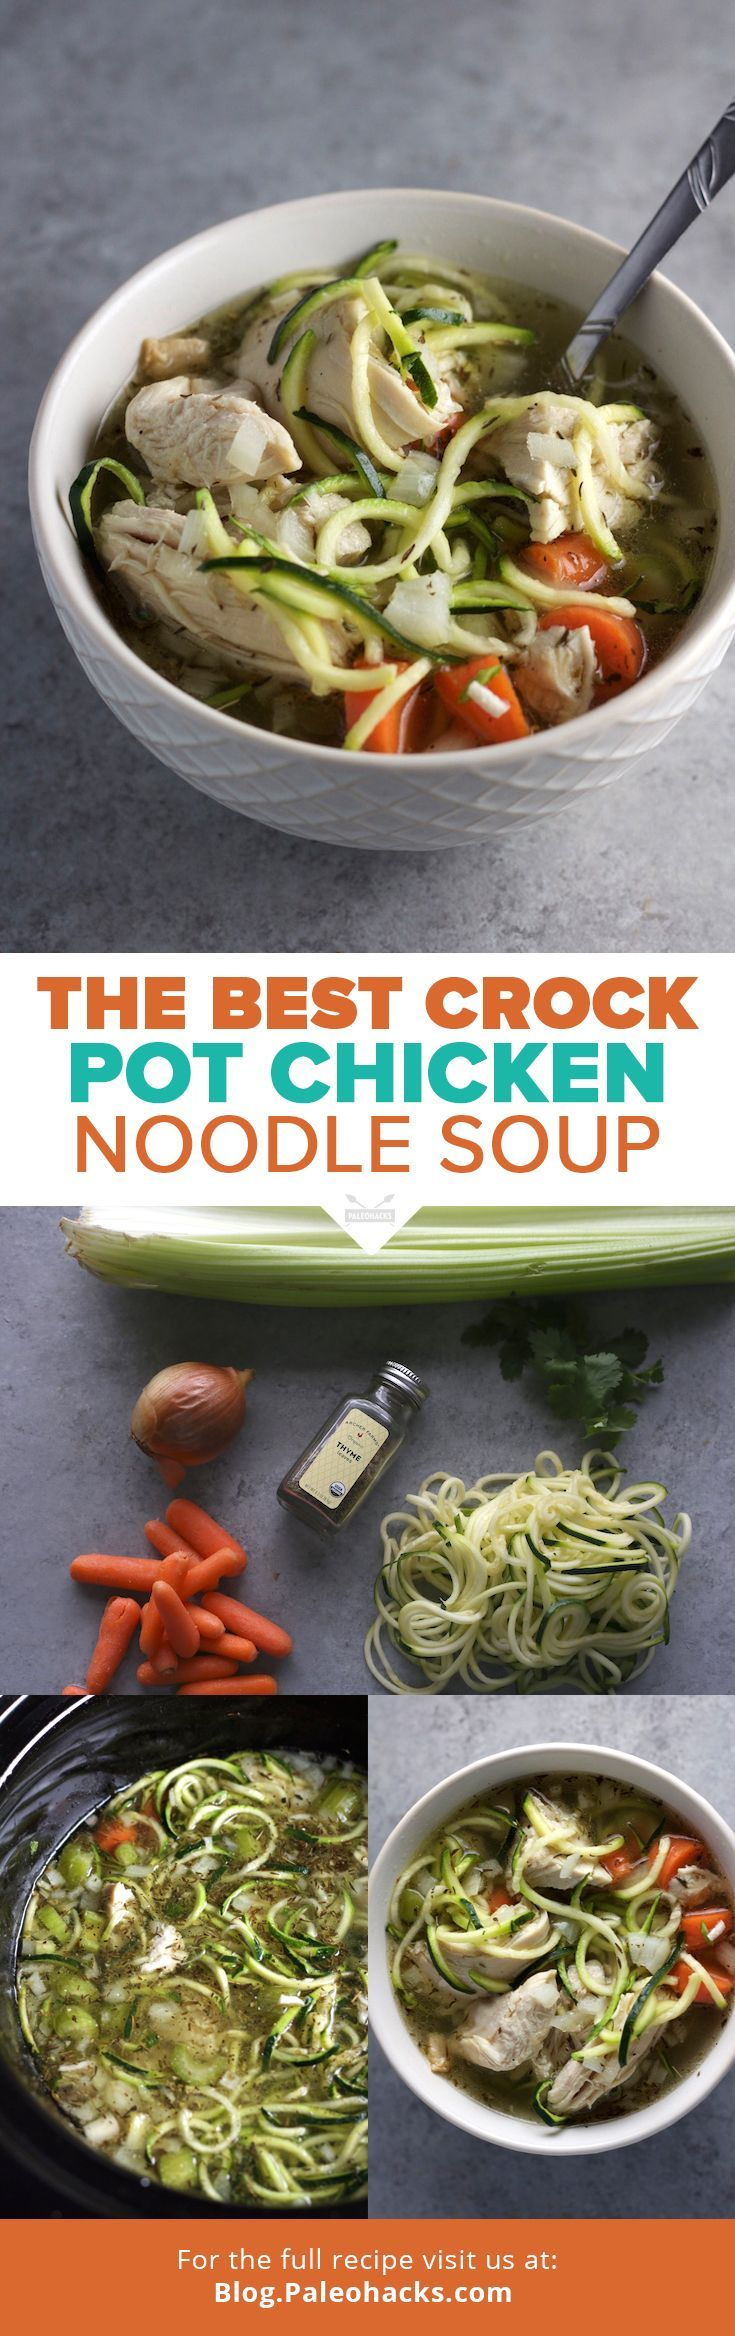 Try this tasty chicken soup recipe that subs out traditional grain noodles with zucchini noodles. Bonus: it's made in a crock pot! Get the recipe here: http://paleo.co/ChuckNoodleSoup